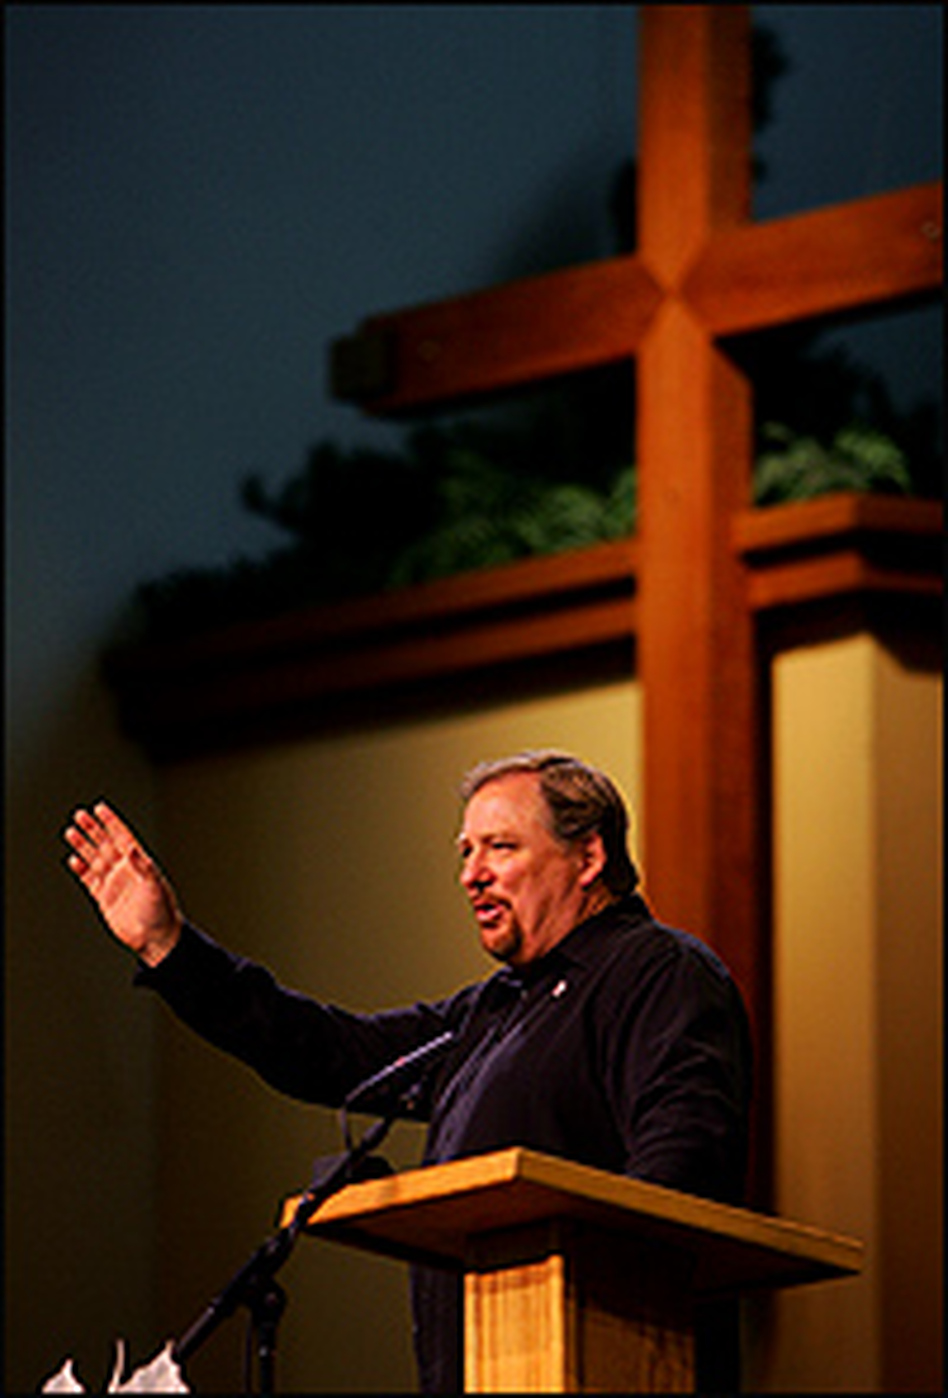 Pastor Rick Warren, founder and leader of the  Saddleback Valley Community Church, speaks at the third annual Global Summit on AIDS and the Church in November 2007.